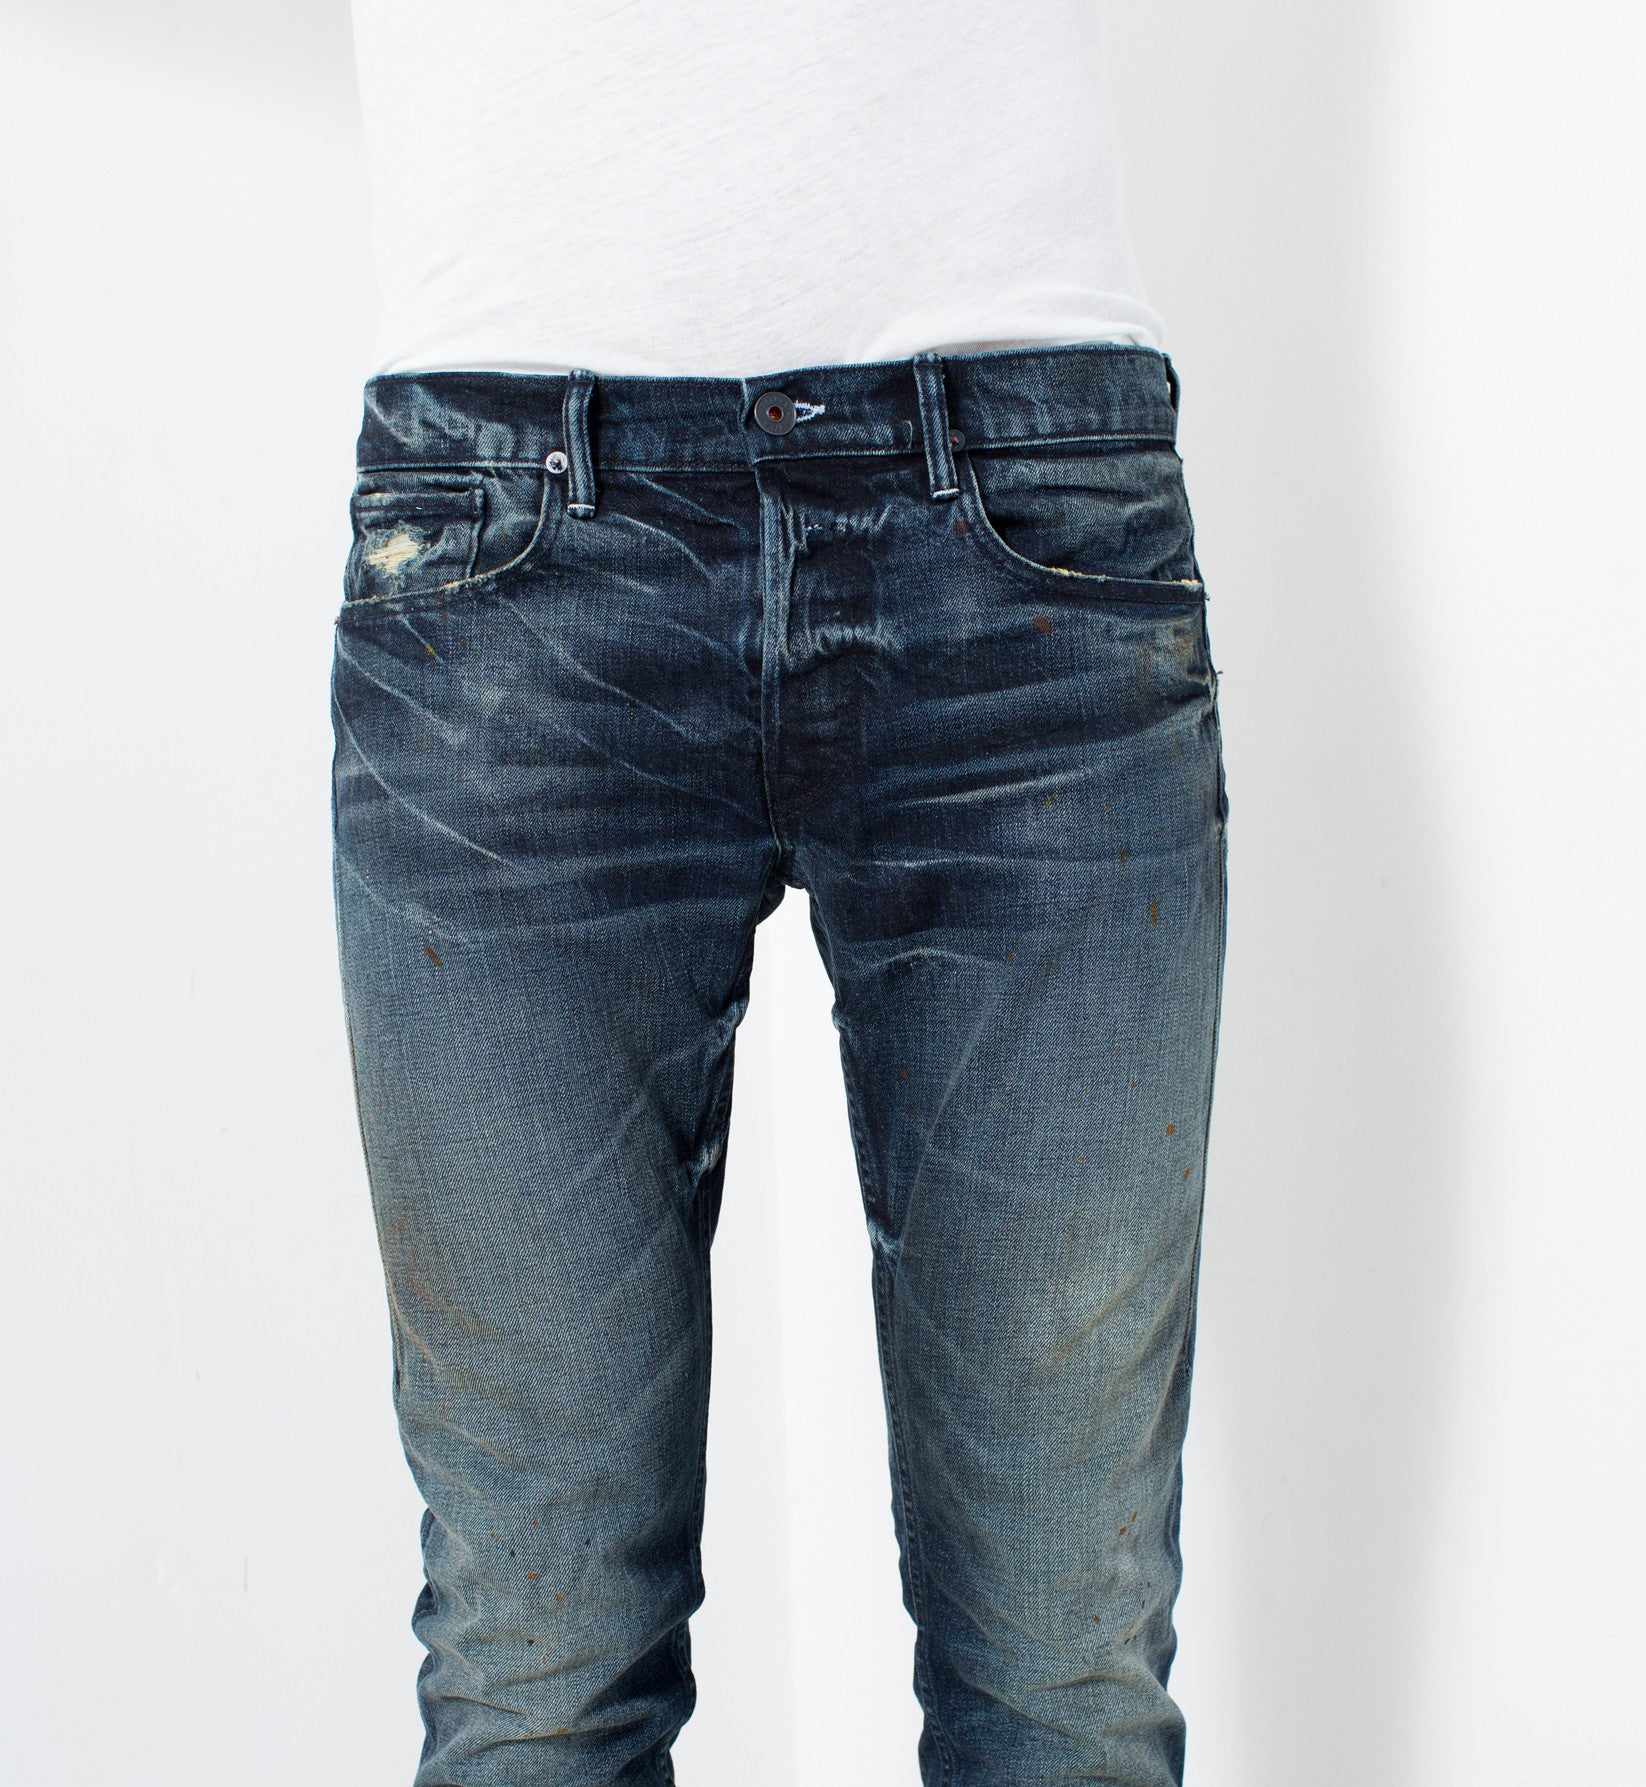 SLIM FIT in WOODWARD | MADE TO ORDER